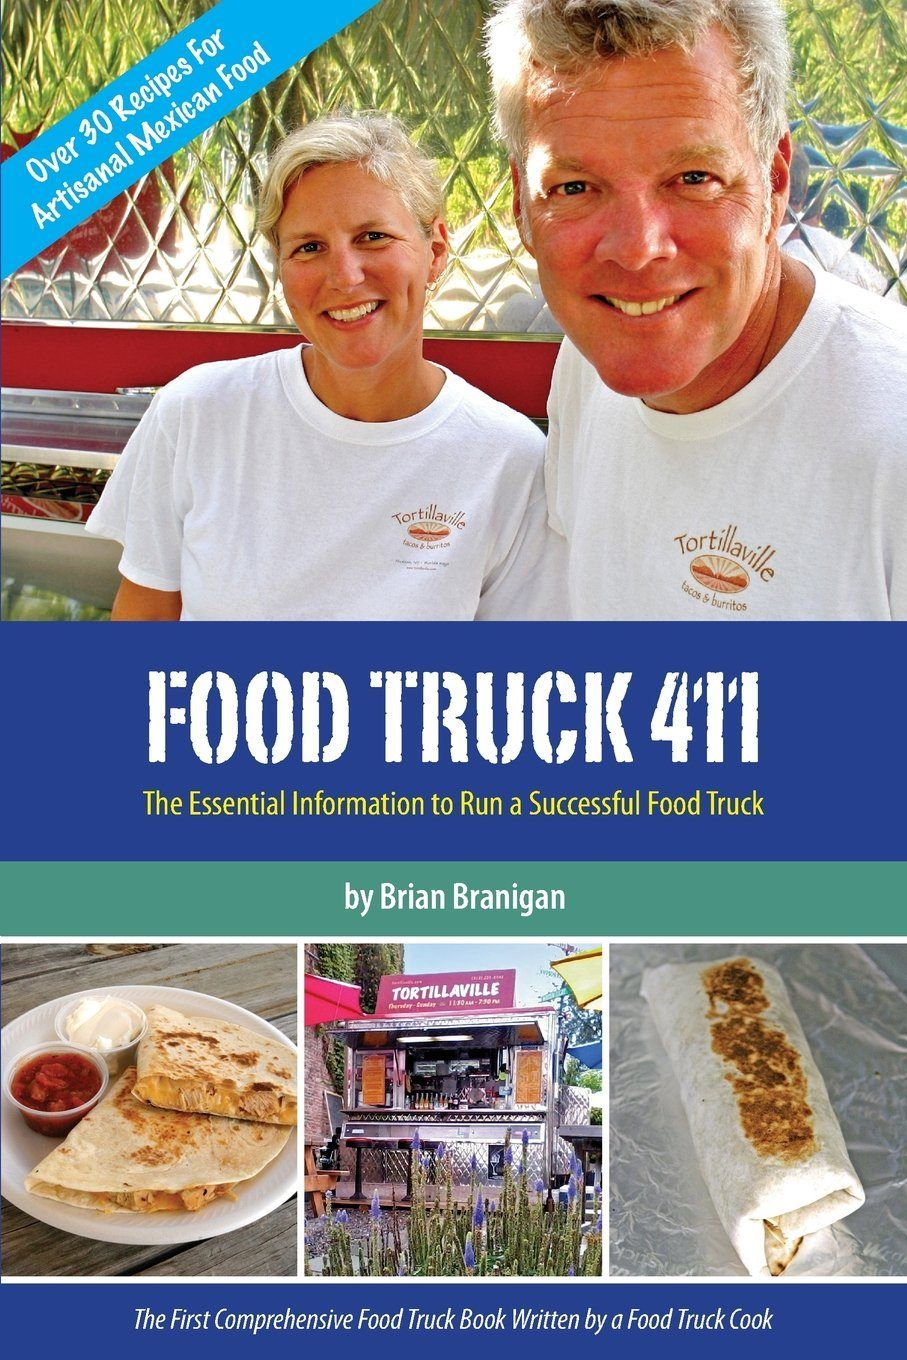 Food Truck 411 : The Essential Information to Run a Successful Food Truck